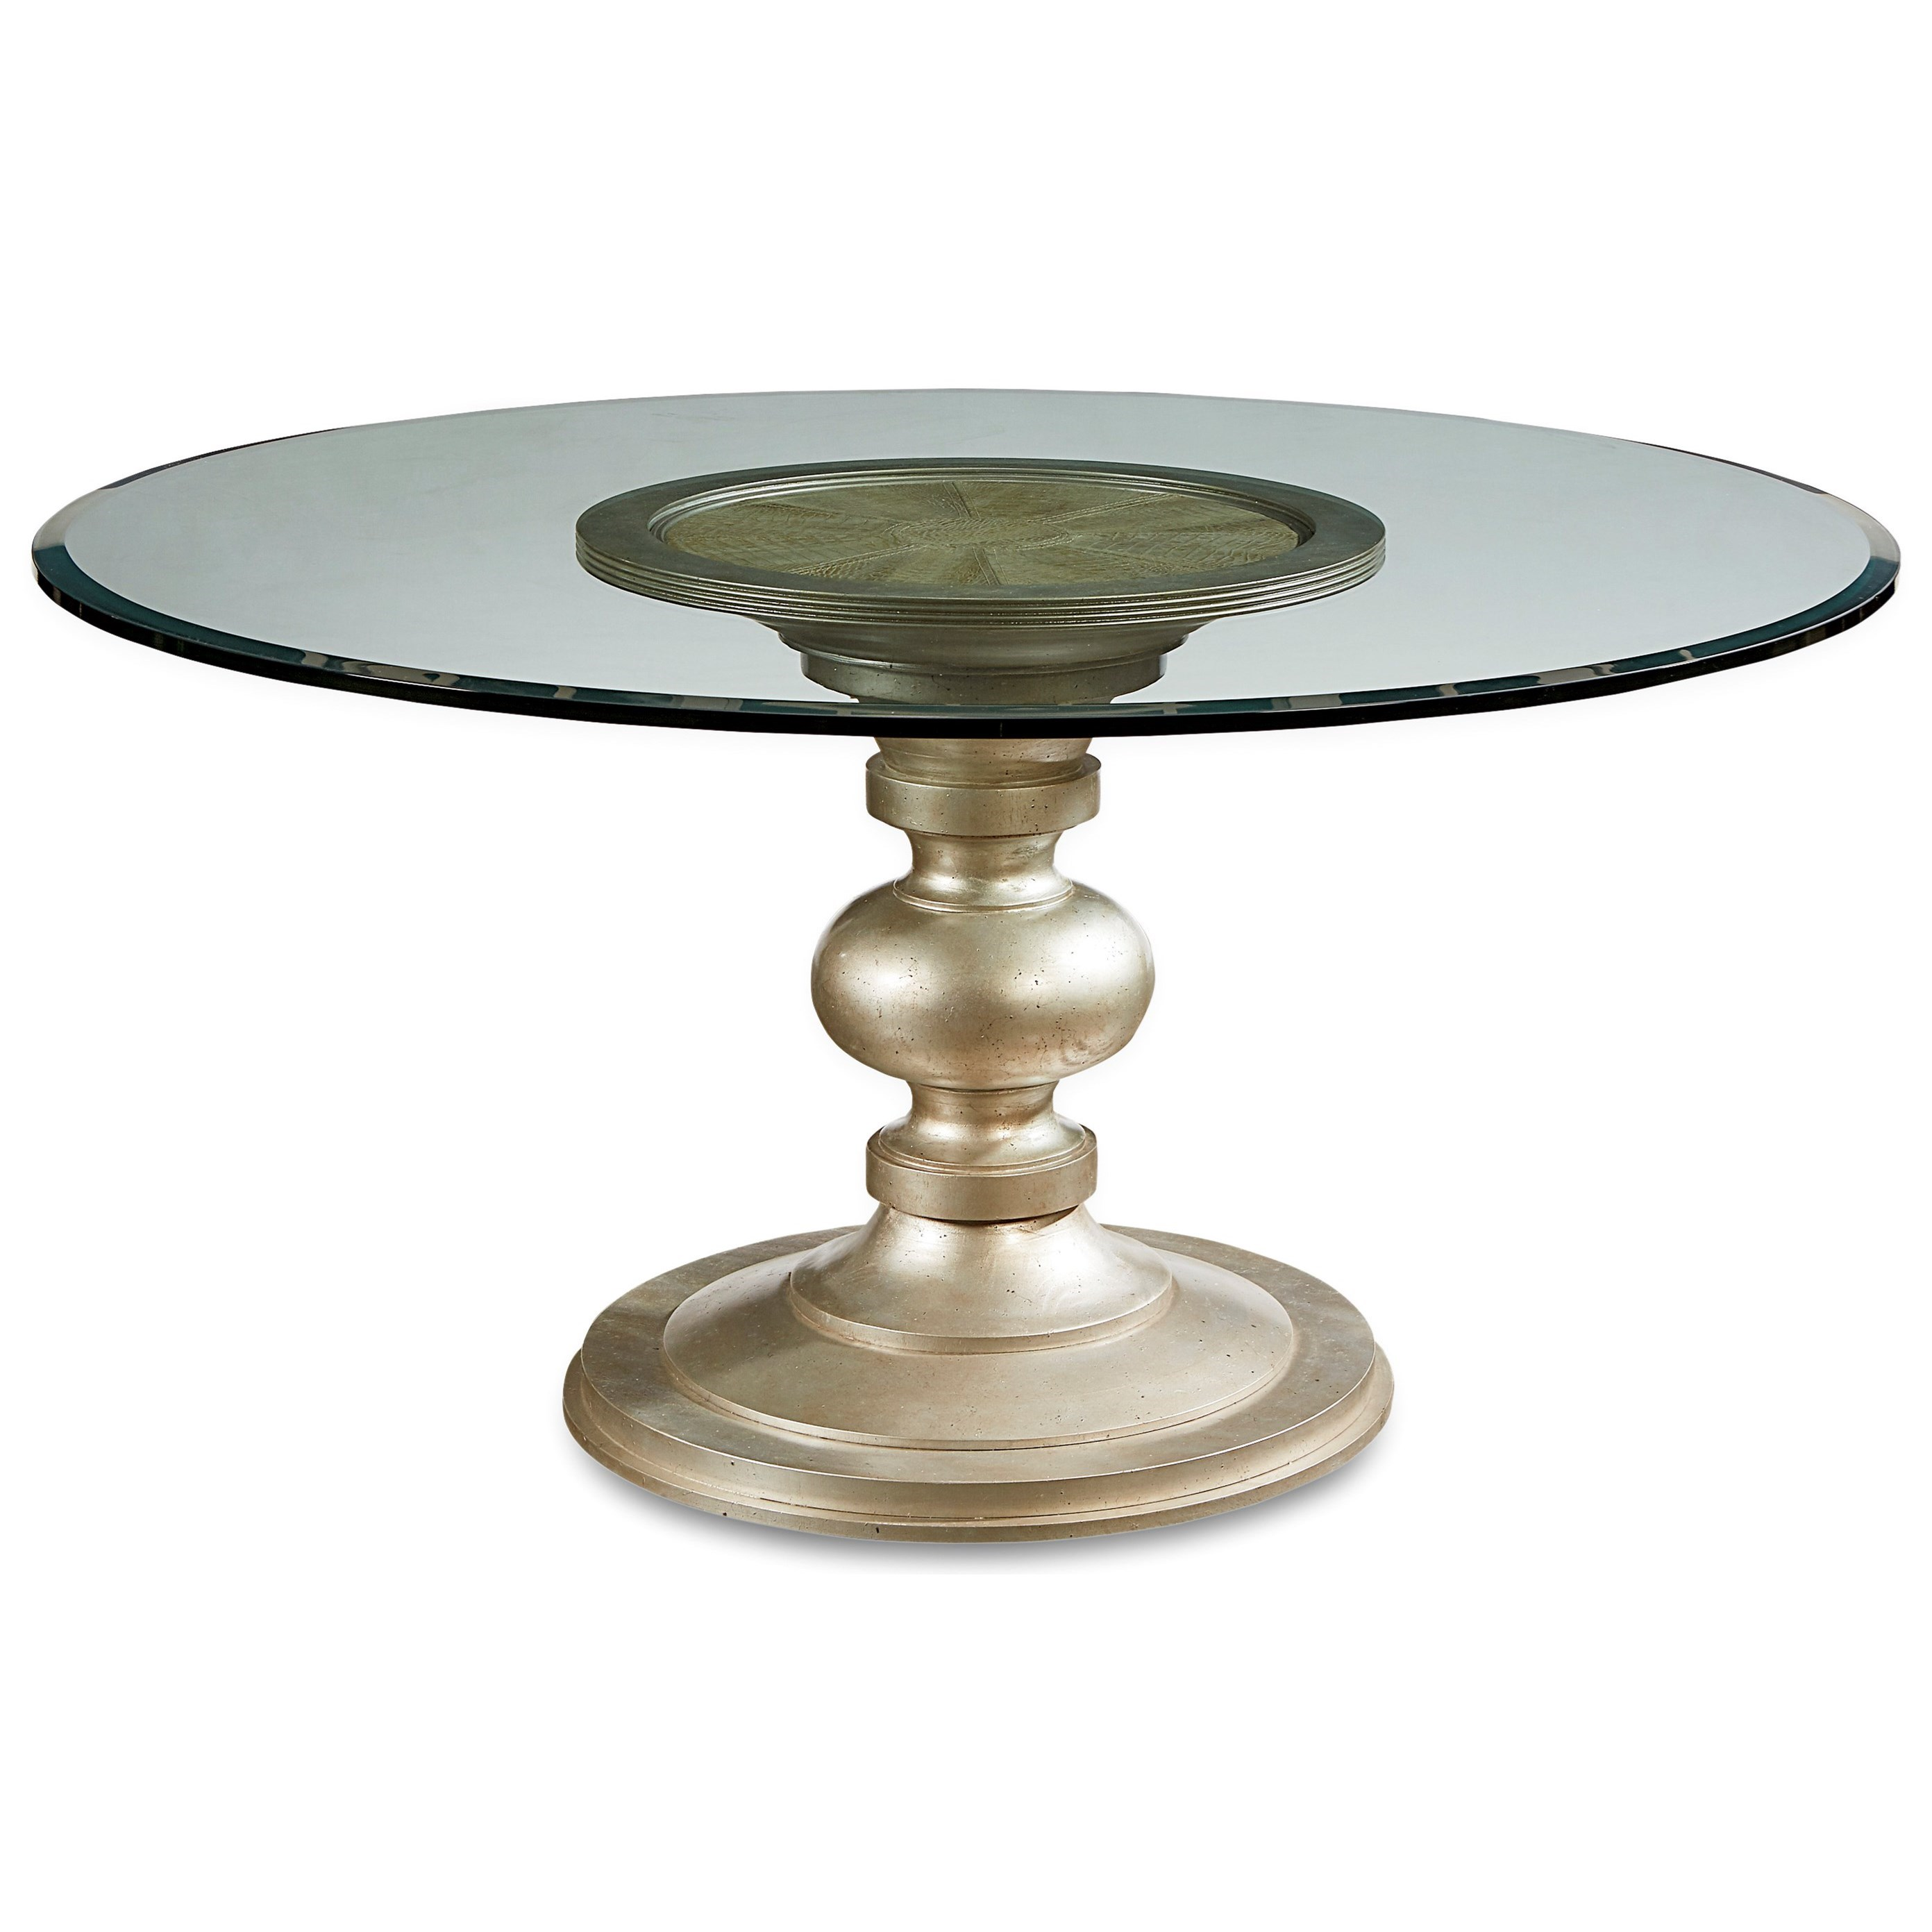 """Morrissey Wallen Round Dining Table w/ 60"""" Glass Top by A.R.T. Furniture Inc at Home Collections Furniture"""